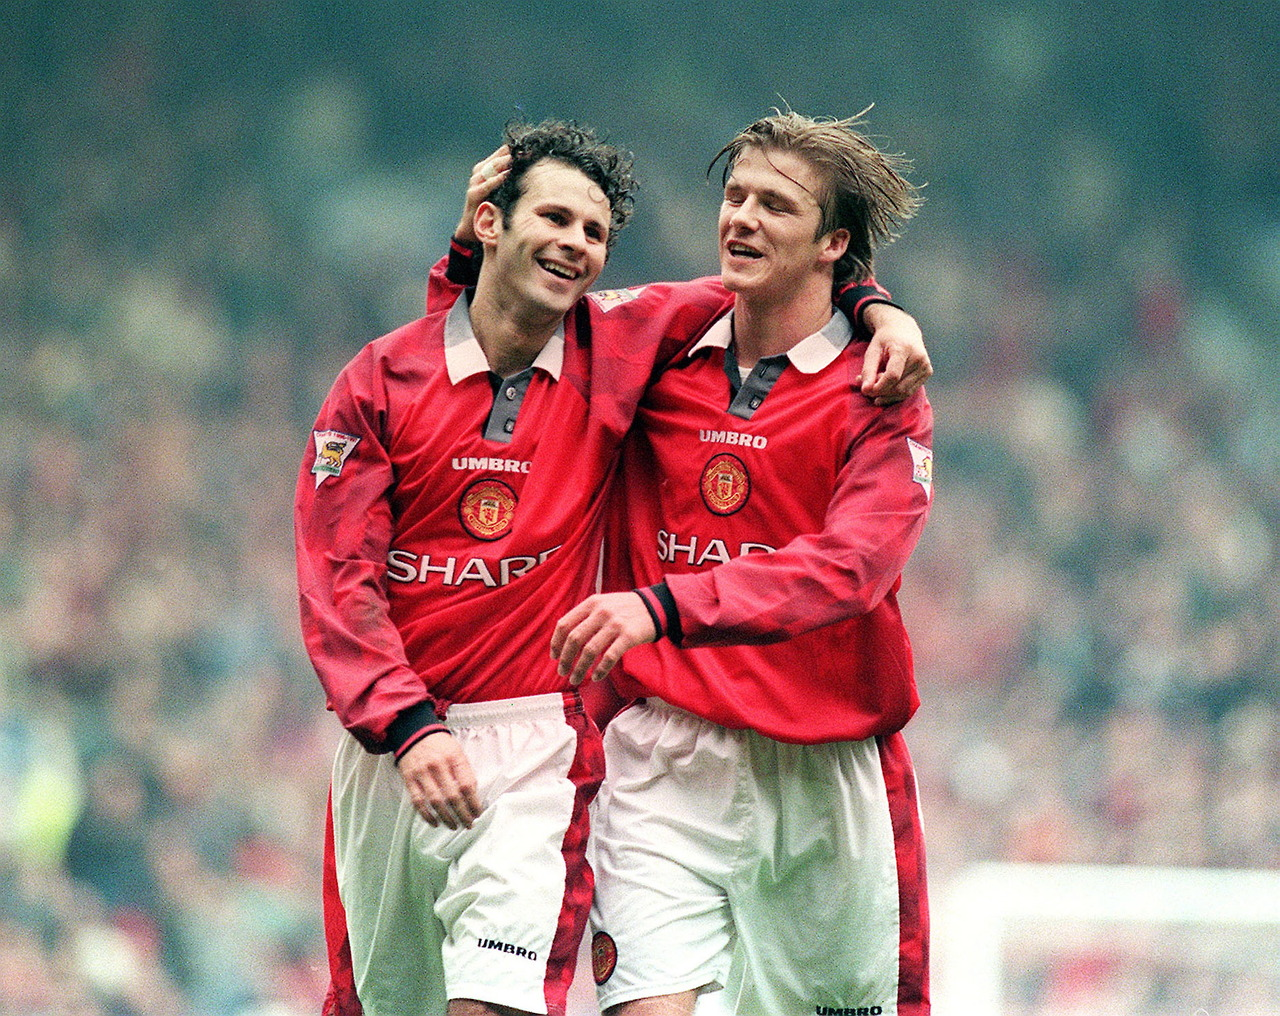 Cute Sweet Wallpapers For Phone Download David Beckham Manchester United Wallpaper Gallery